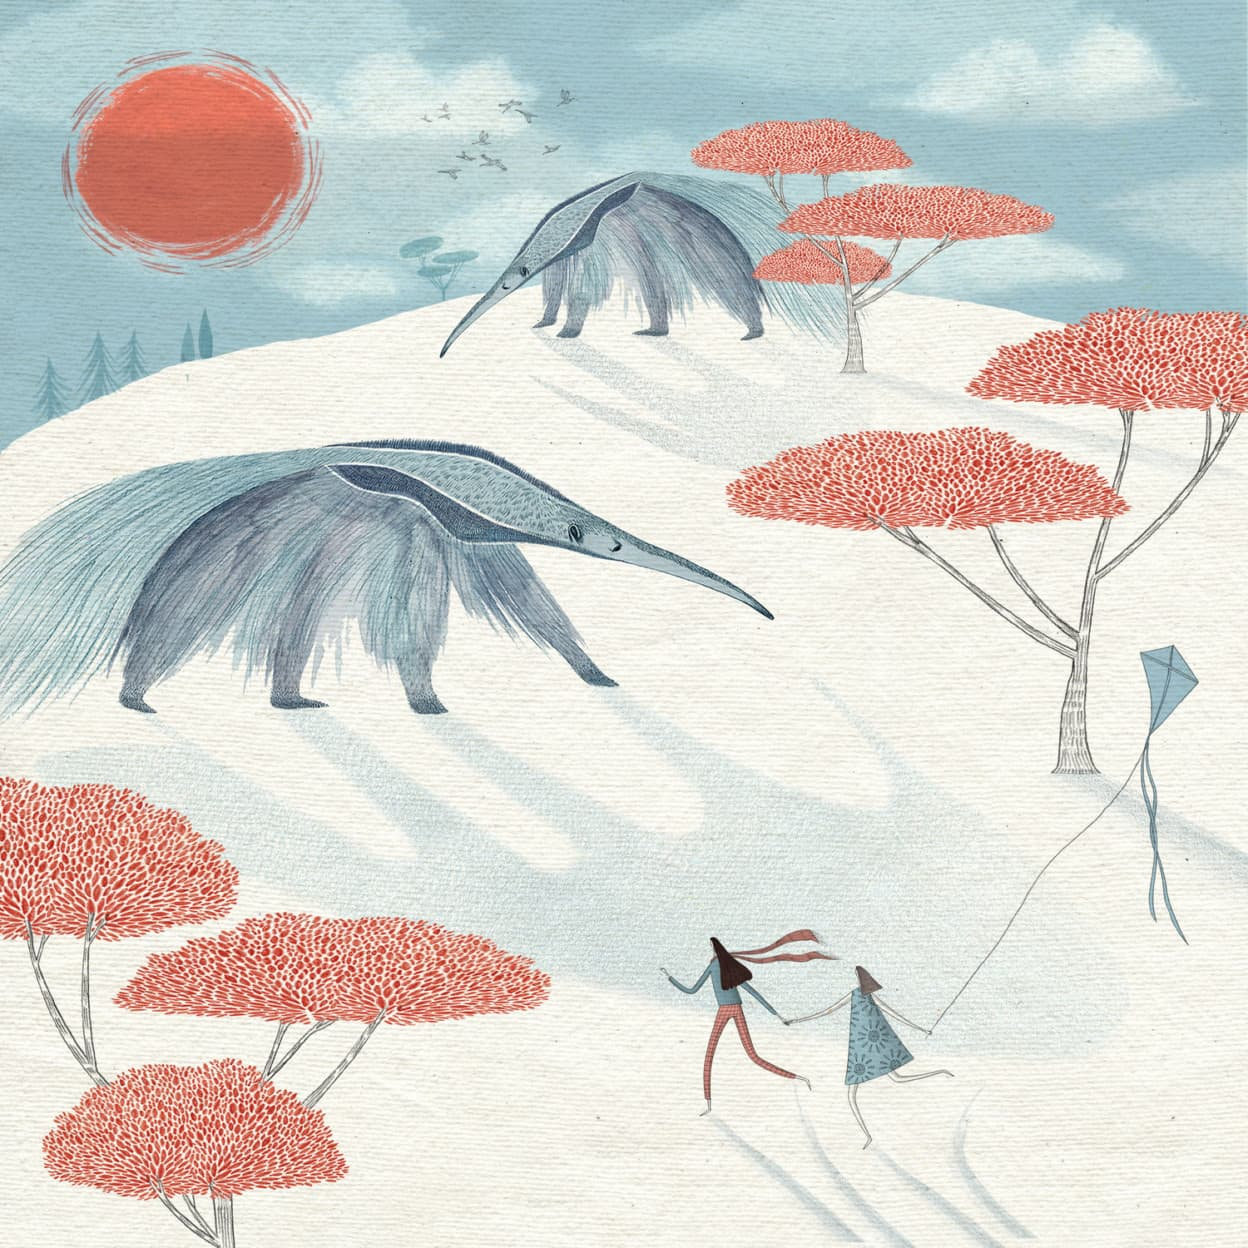 Rosanna Tasker Illustrationen